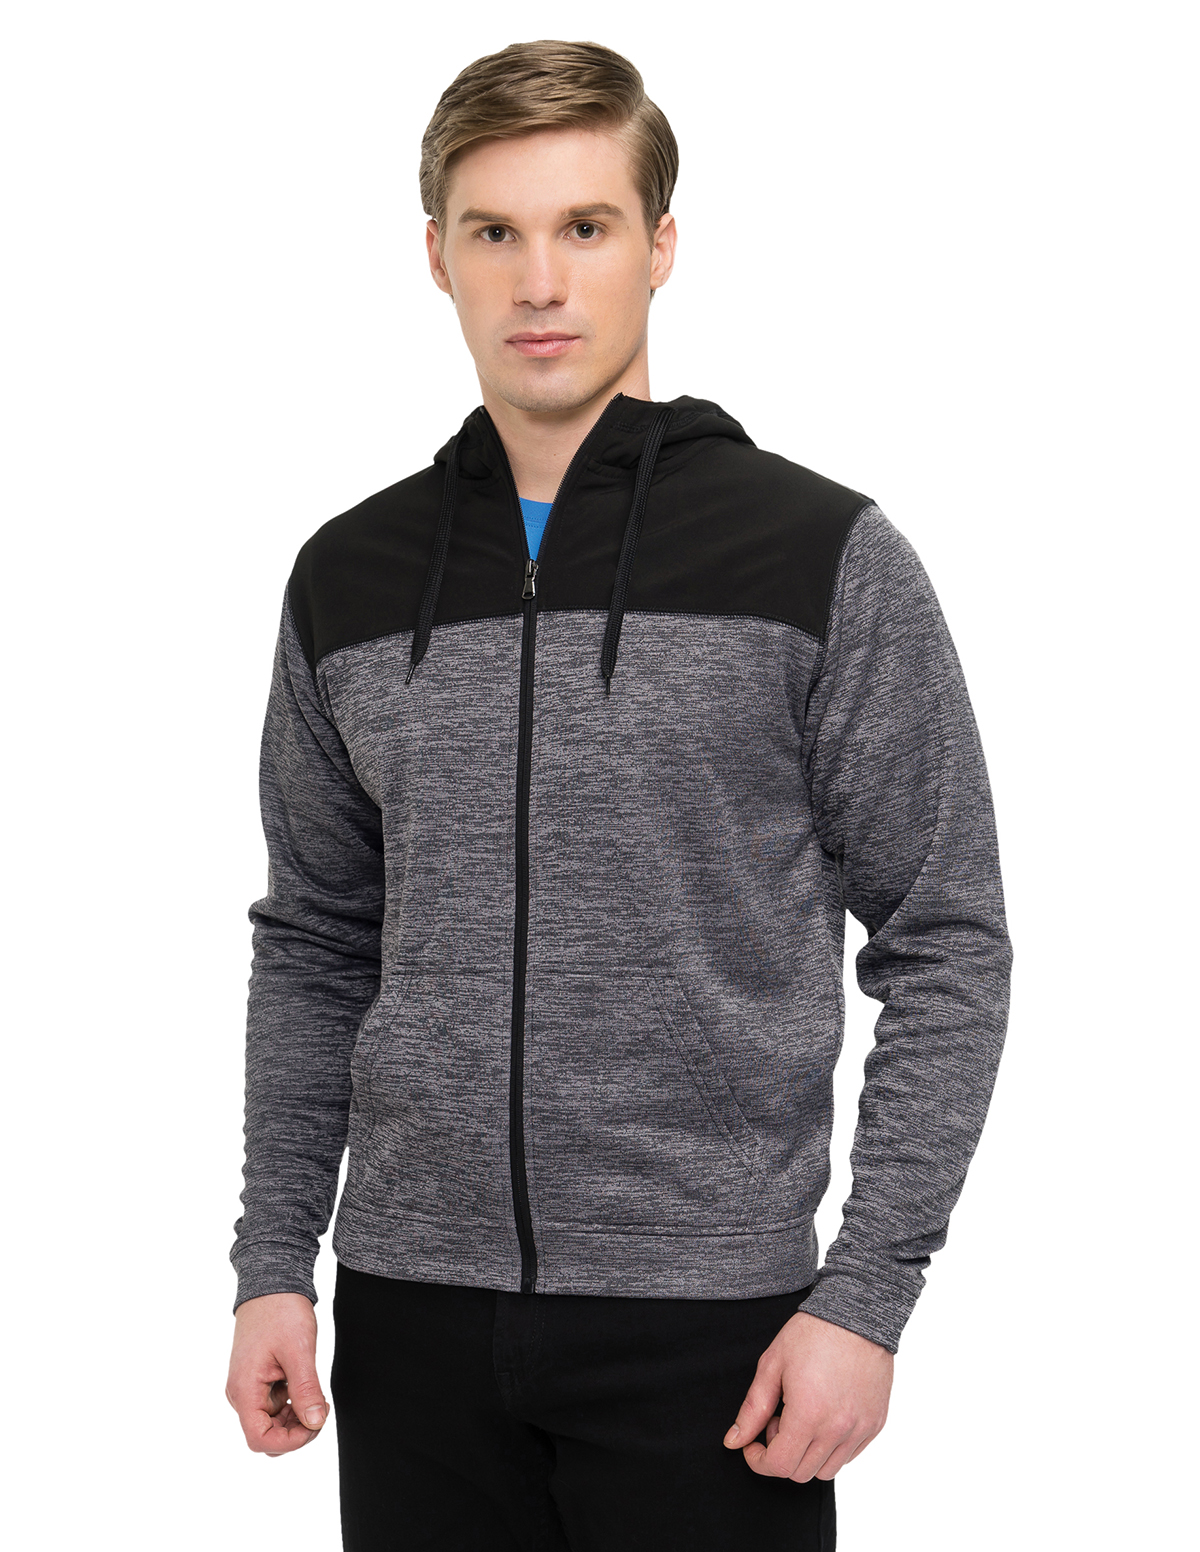 Tri-Mountain Performance F7455 - Vault Men's 100% Polyester ...